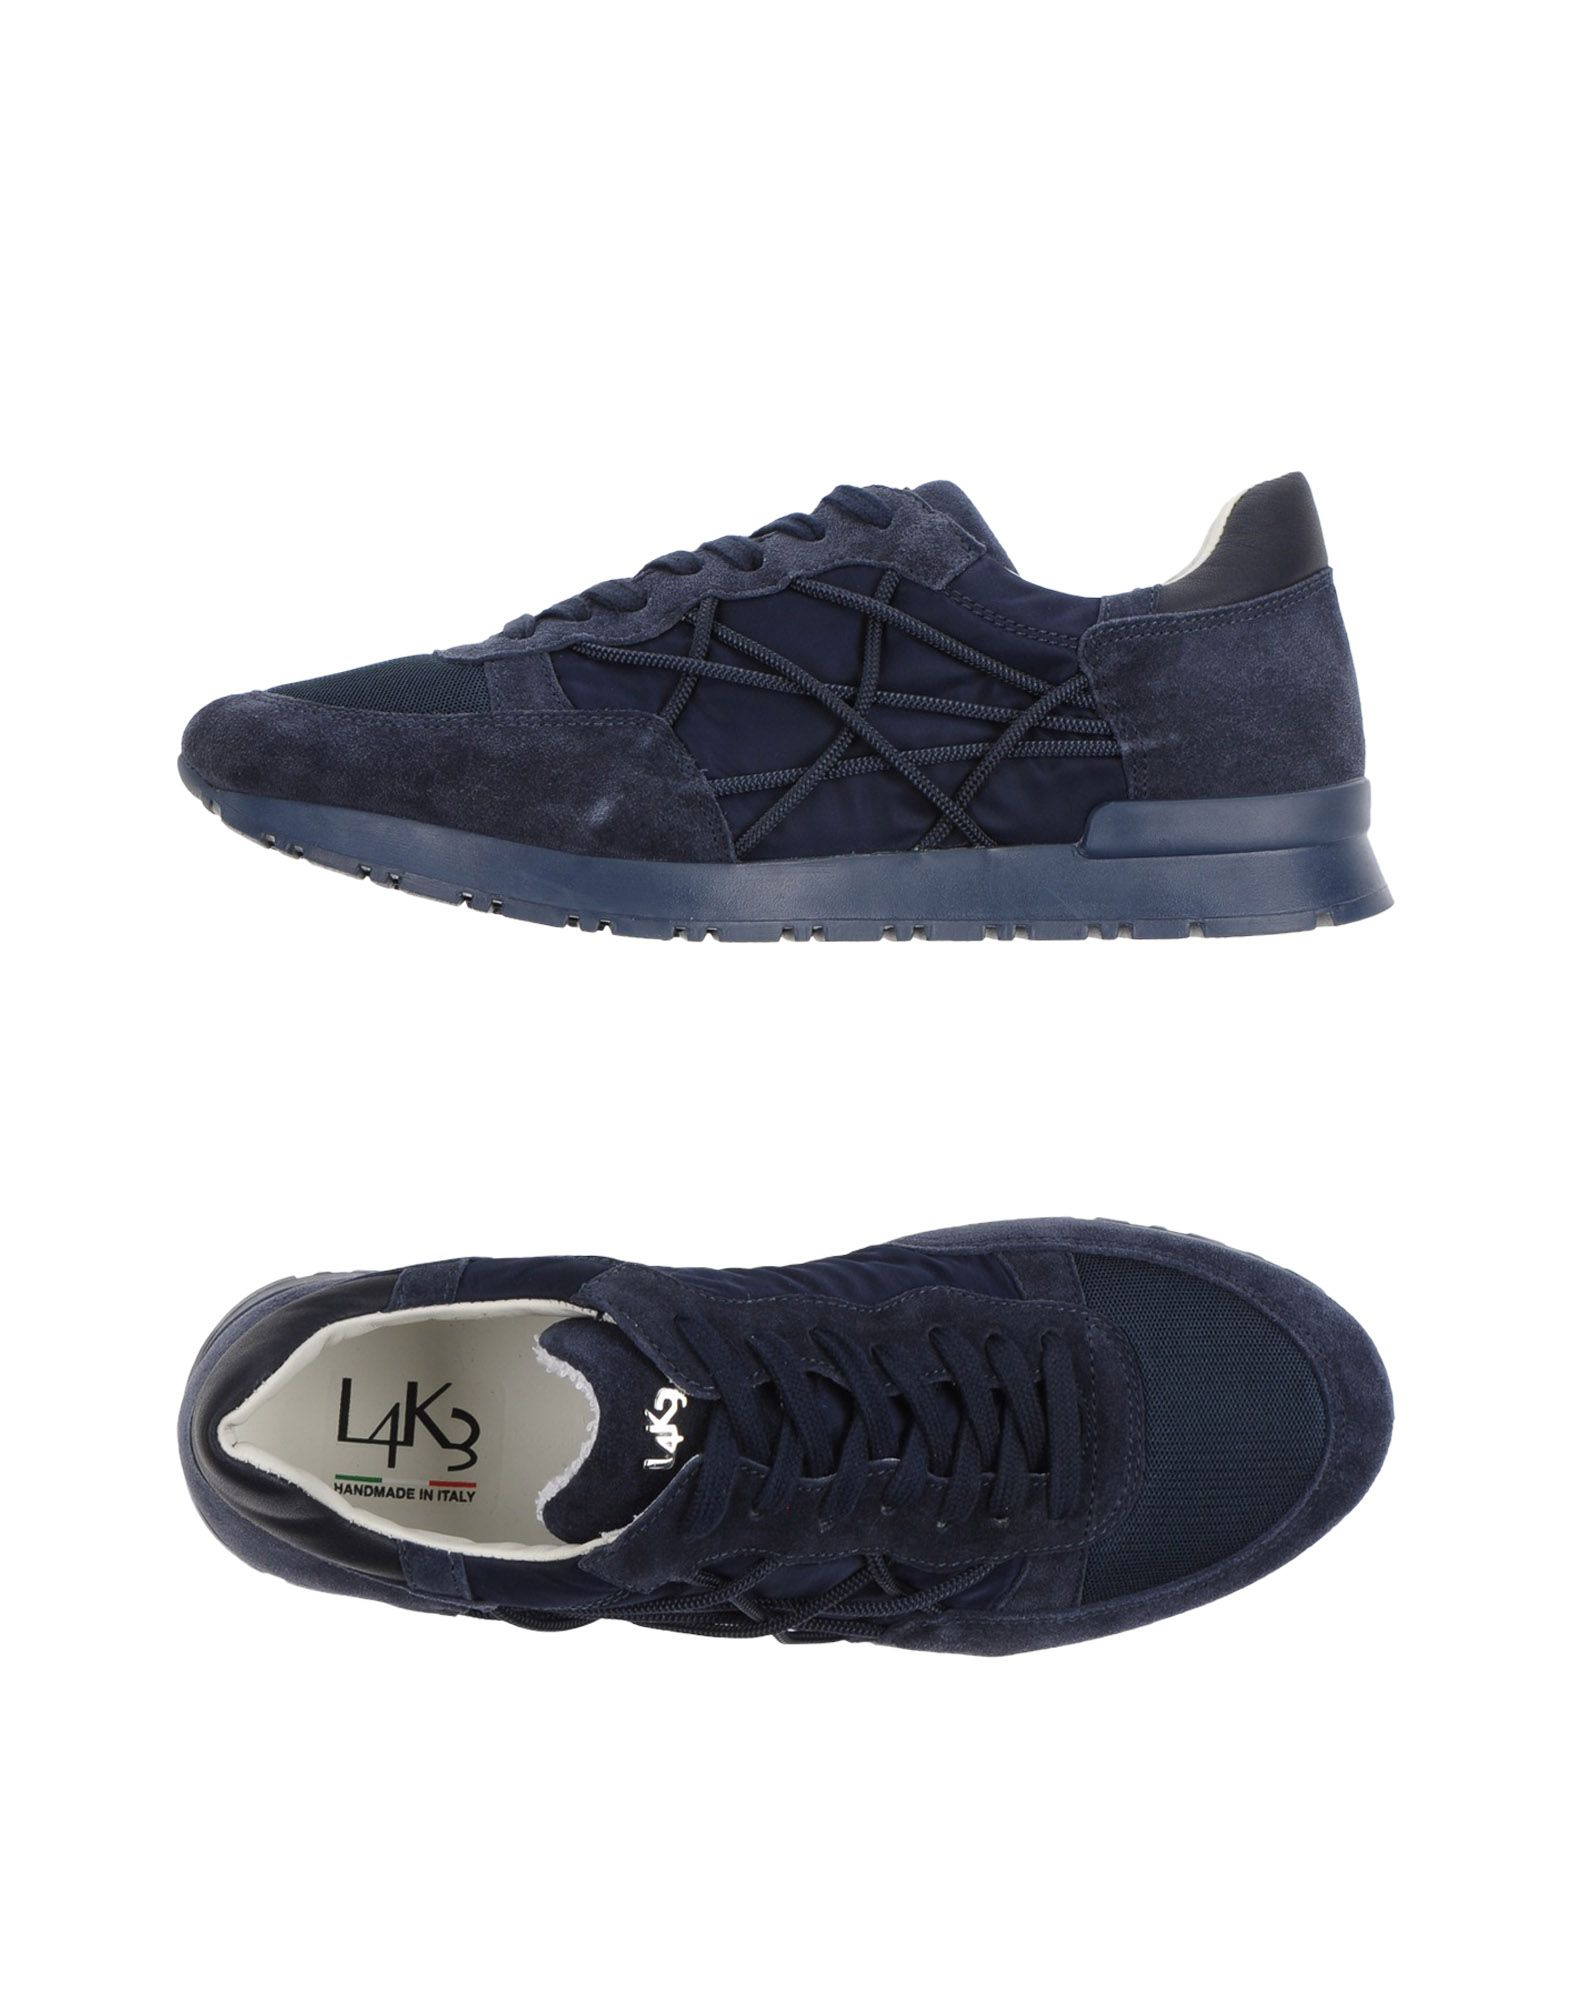 Turnscarpe L4k3 uomo - 11355668CT